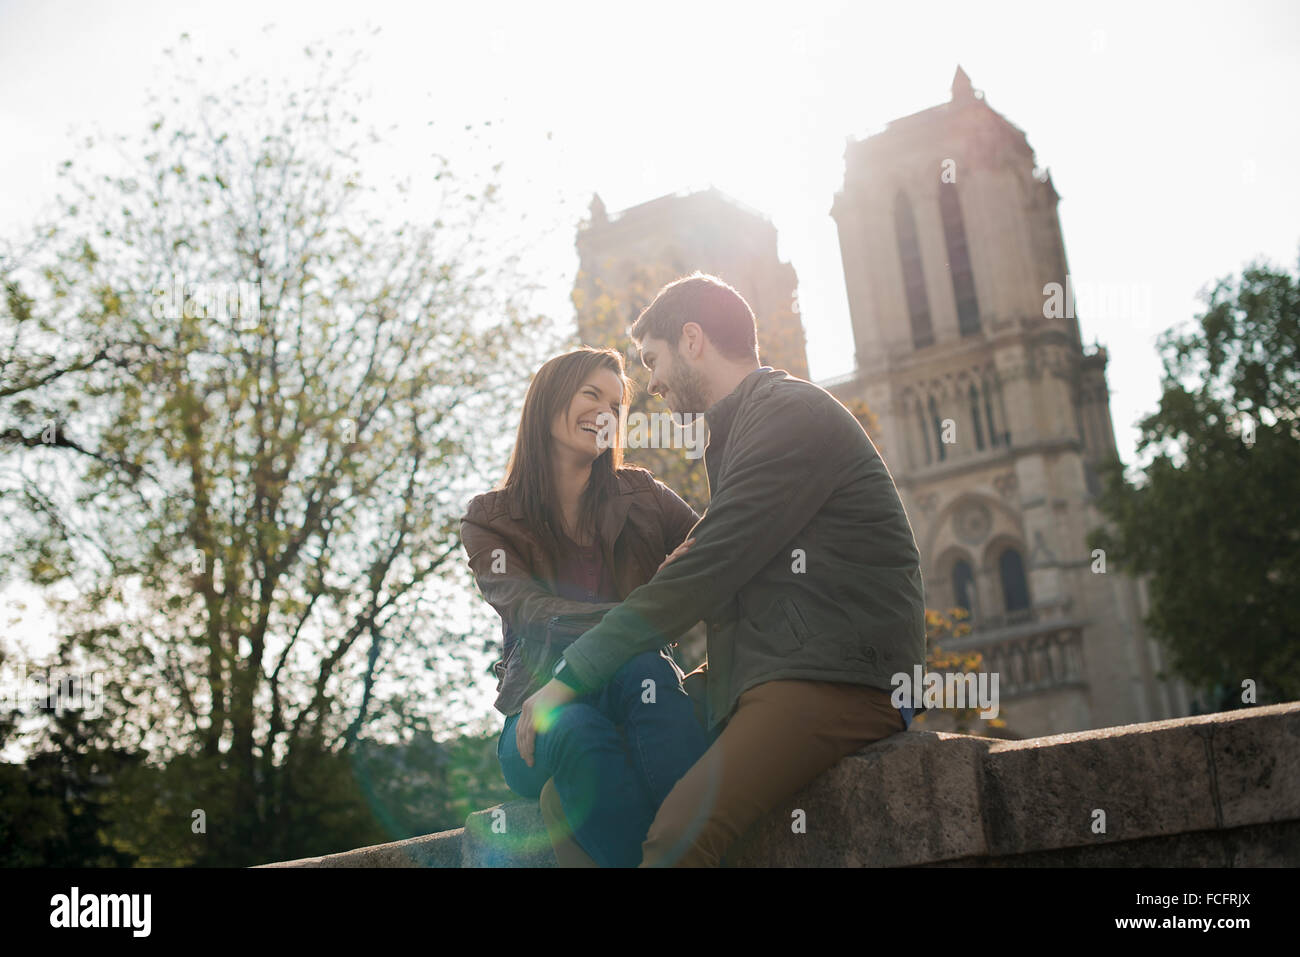 A couple in a romantic mood, side by side with arms around each other outside Notre Dame Cathedral in Paris. - Stock Image